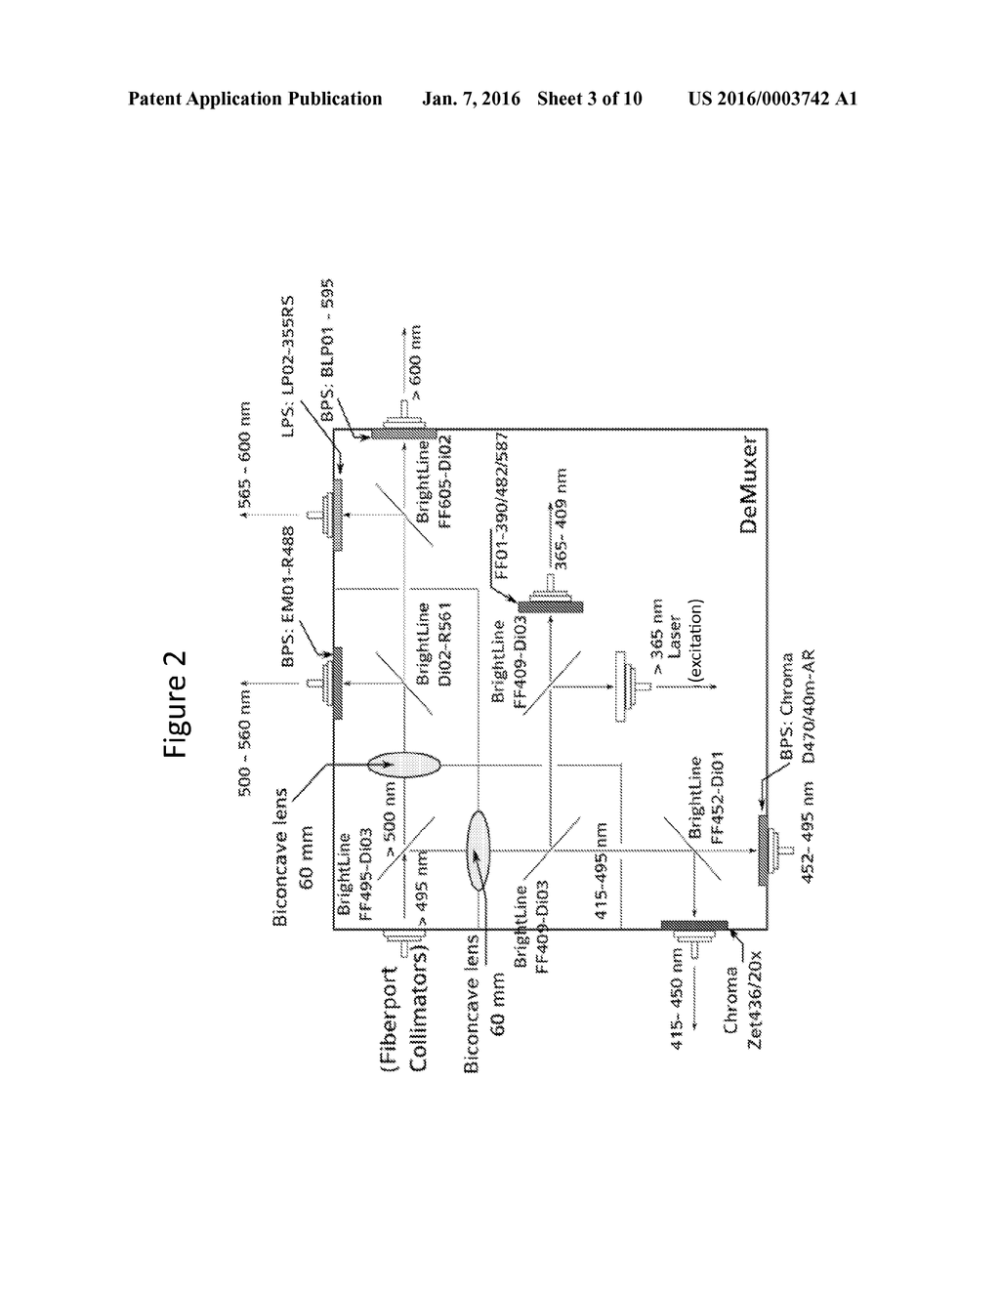 medium resolution of time resolved laser induced fluorescence spectroscopy systems and uses thereof diagram schematic and image 04